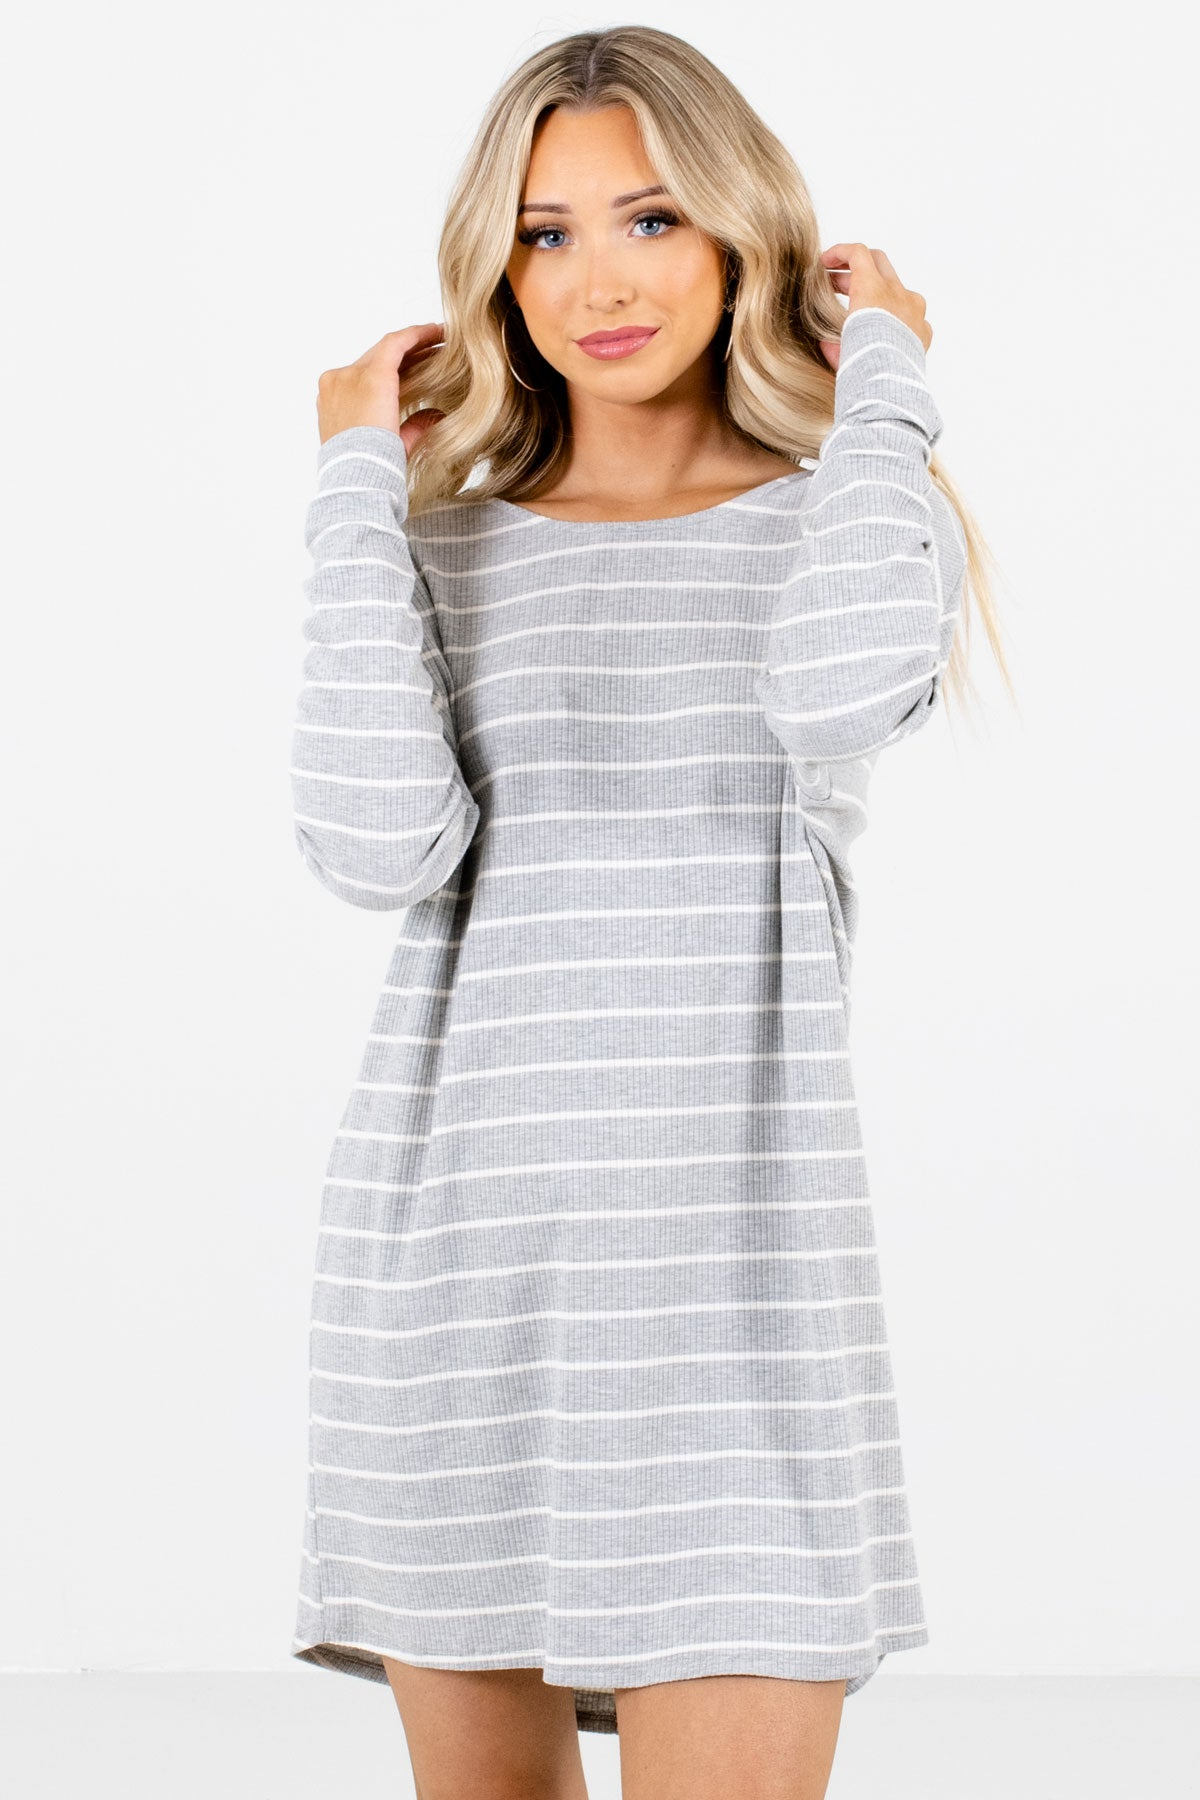 Heather Gray and White Striped Boutique Mini Dresses for Women